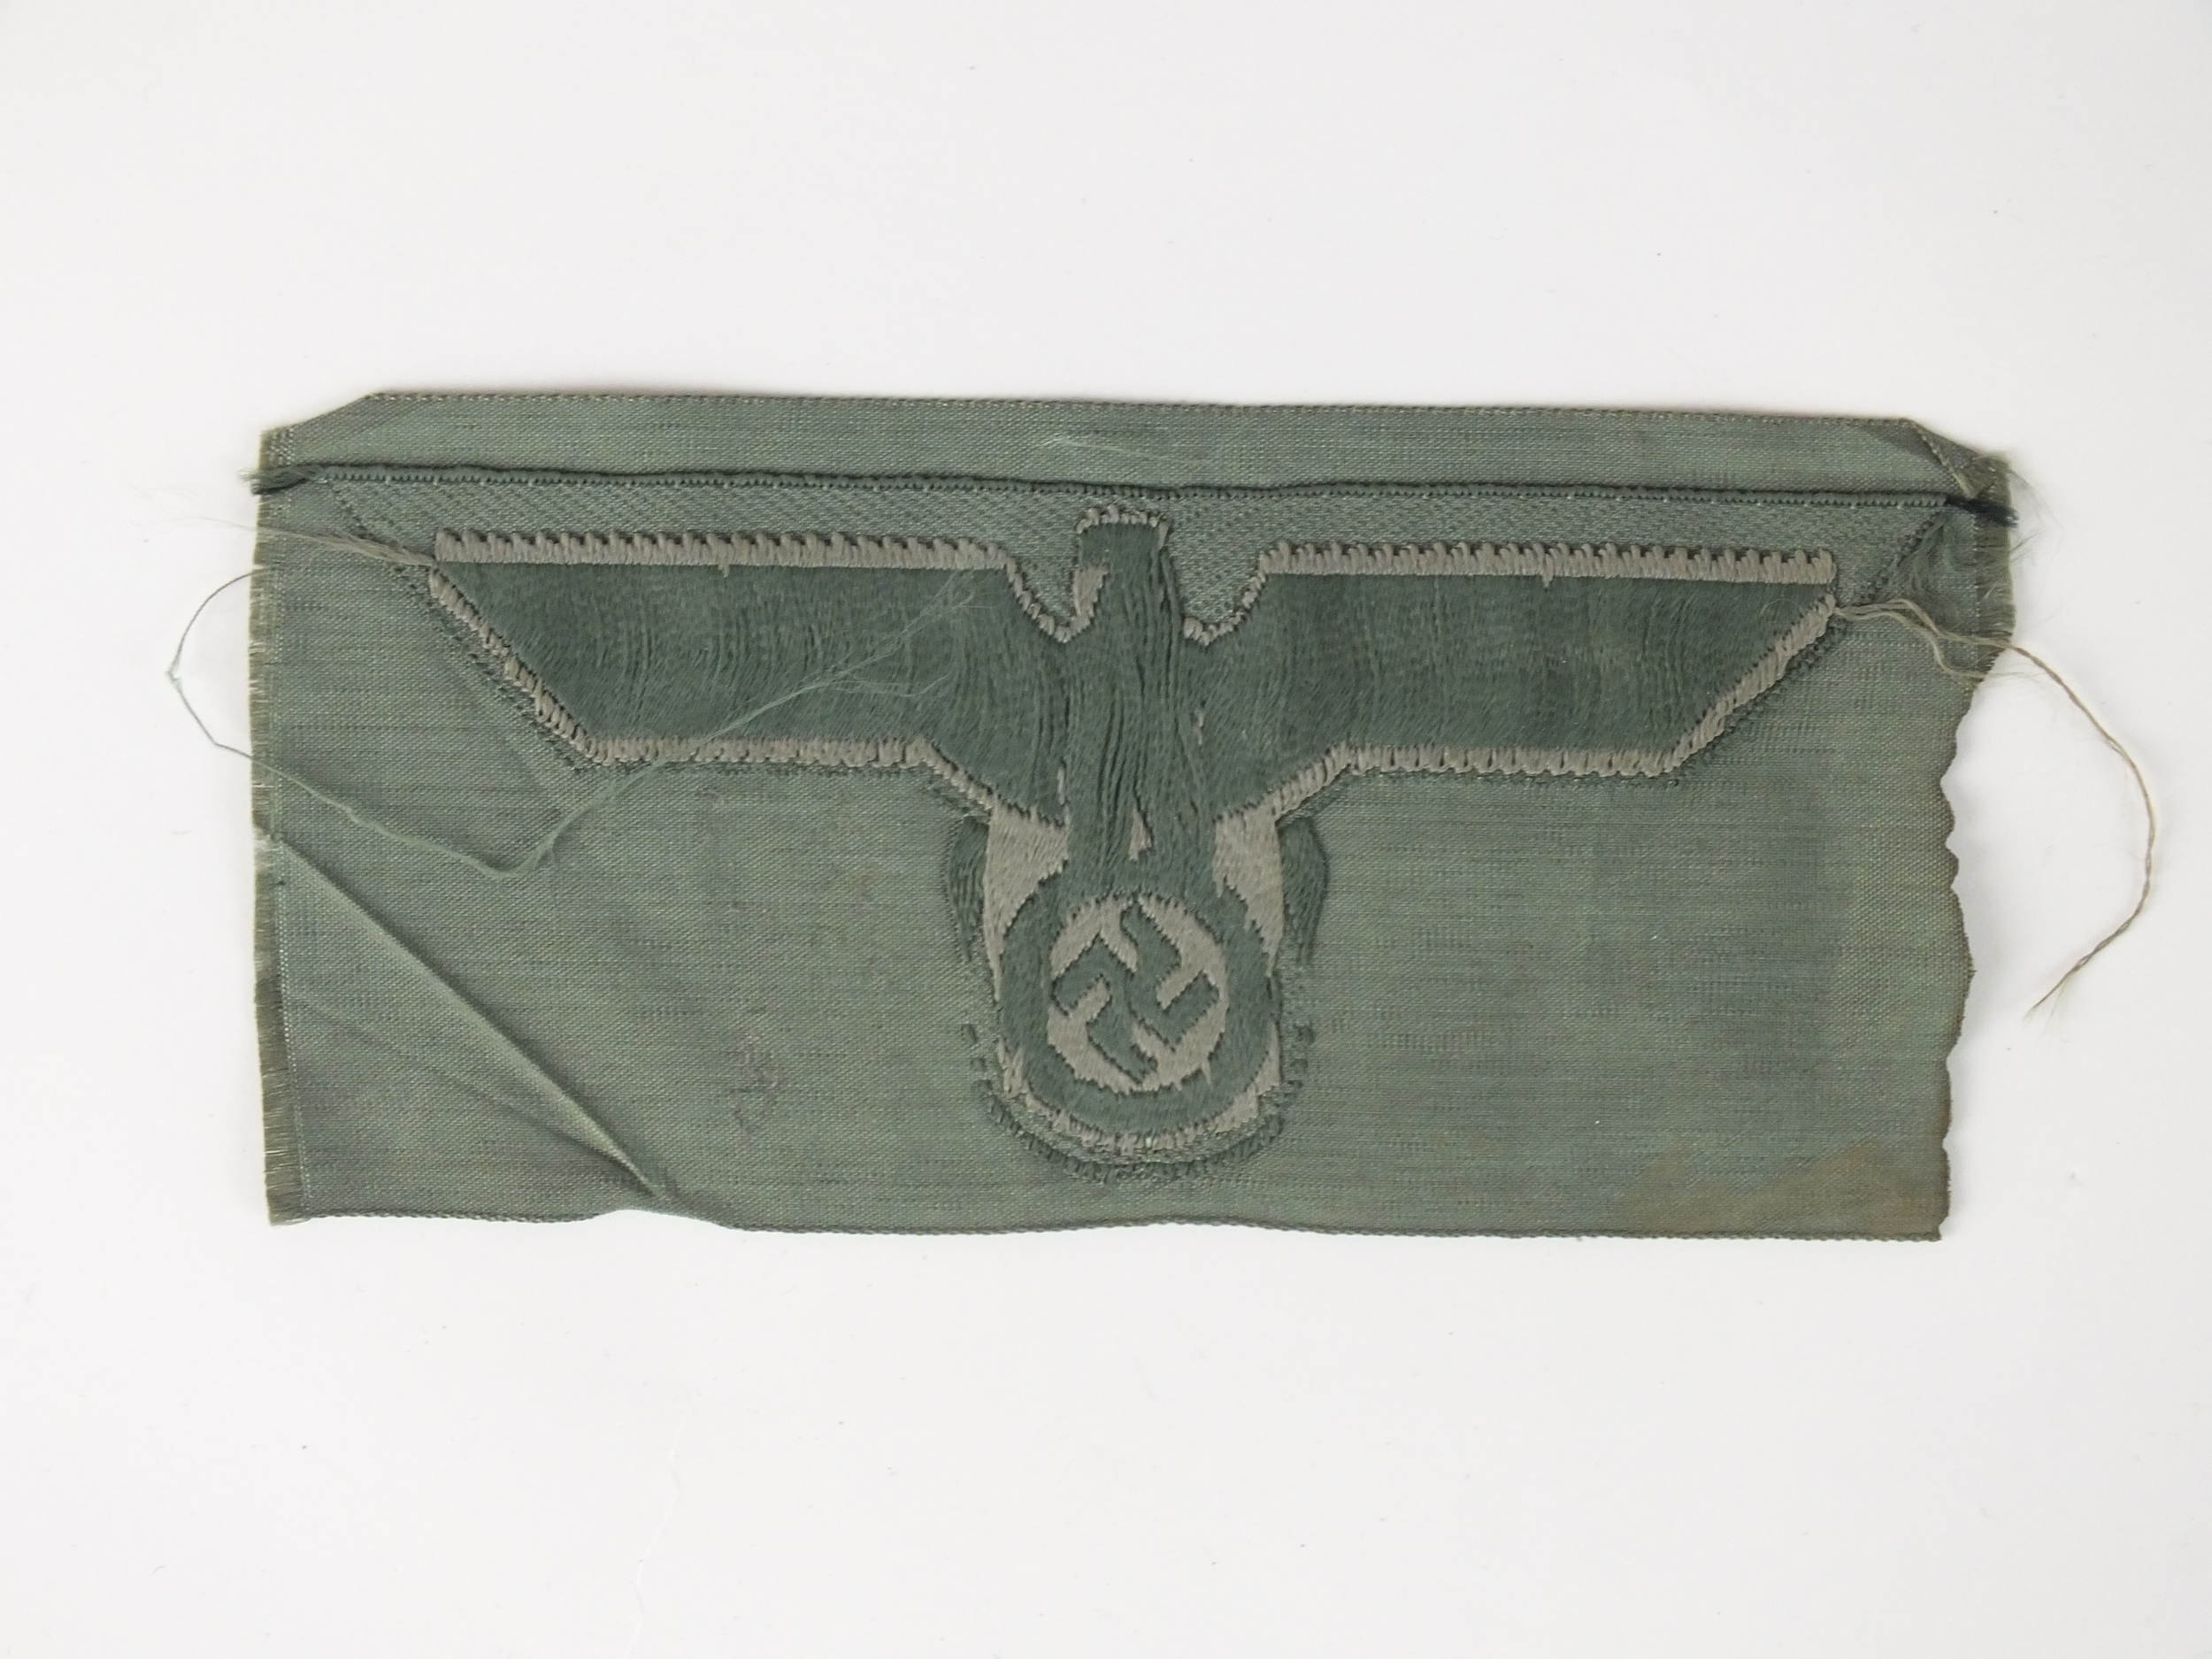 German Wehrmacht Heer (Army) BeVo breast eagle, subdued grey eagle against field grey backing. - Image 2 of 2